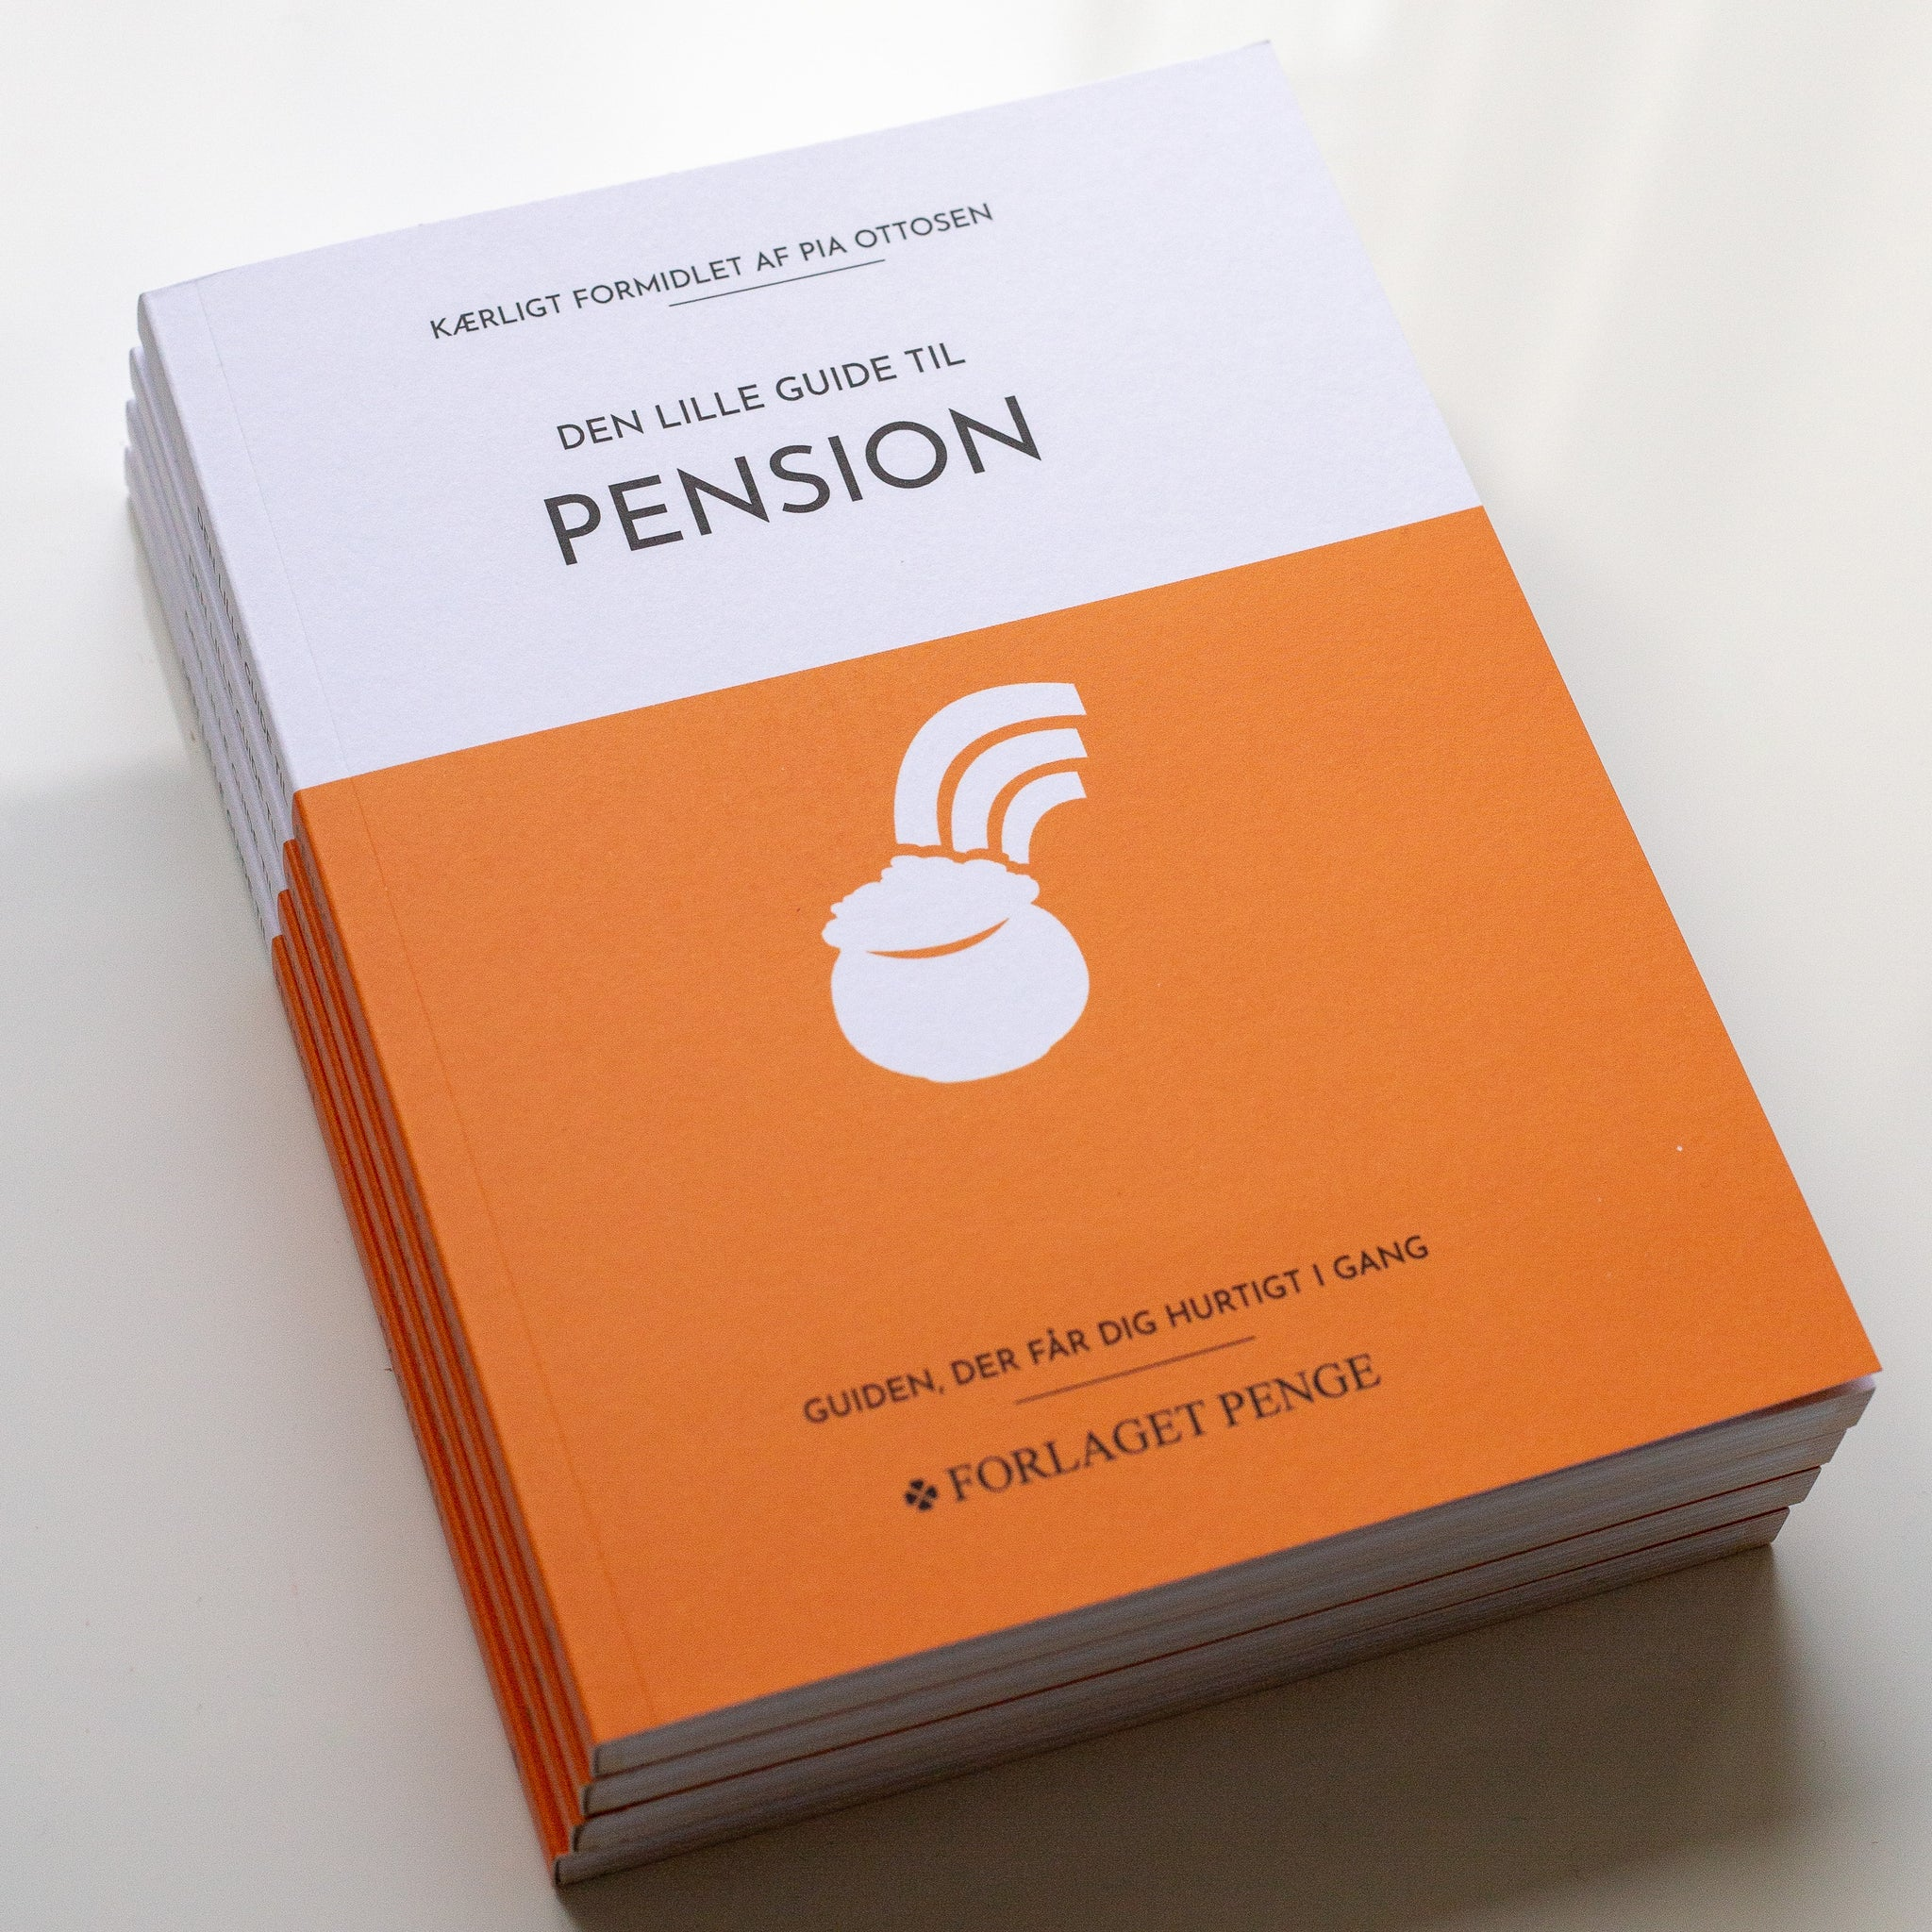 Den lille guide til Pension